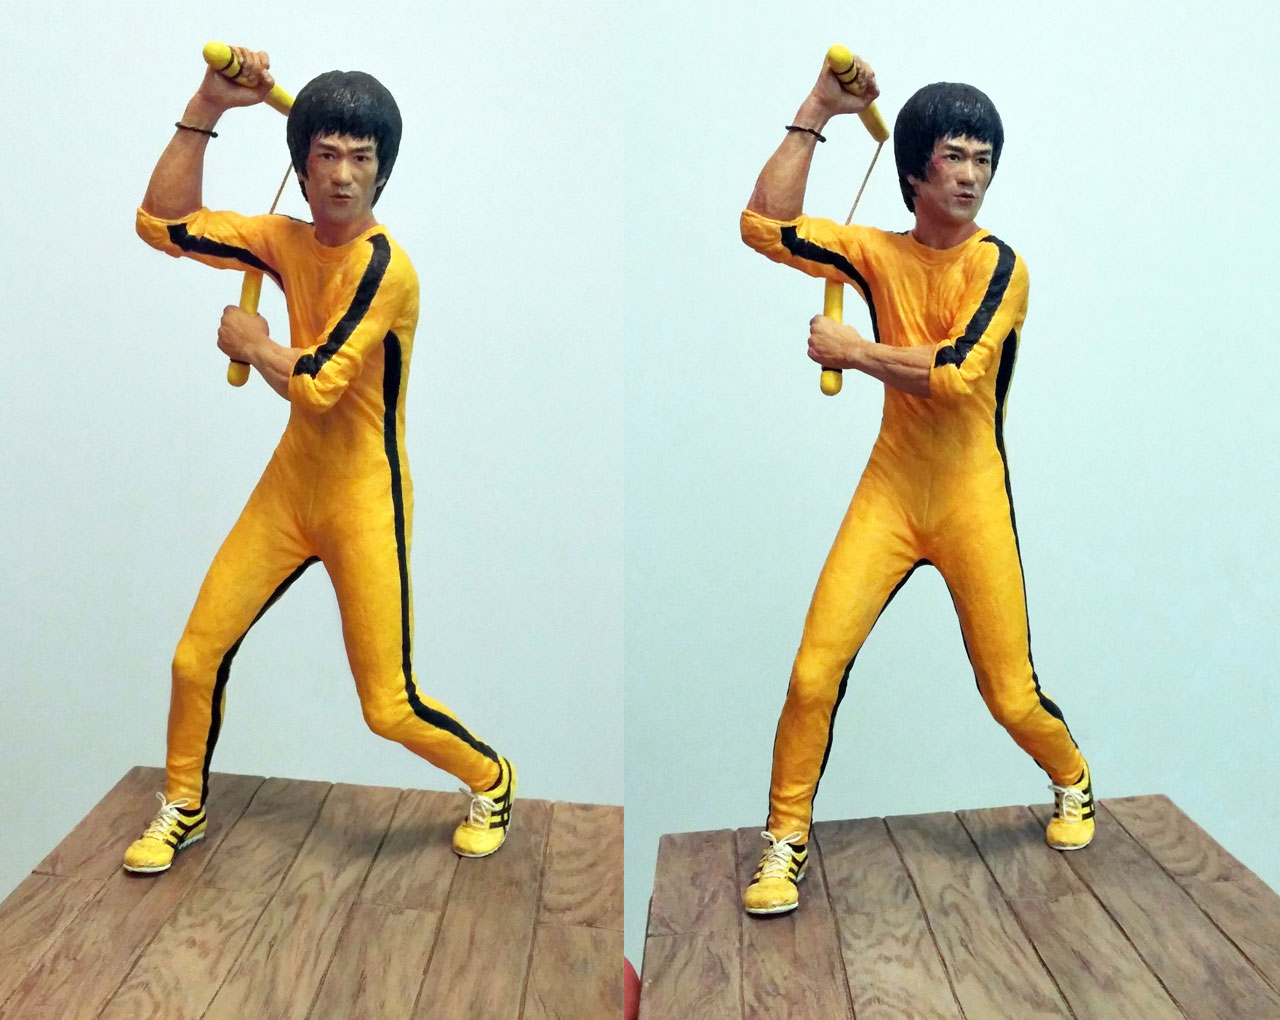 Two full body images of the completed miniature statue Hai Tien of Game of Death with nunchaku and base